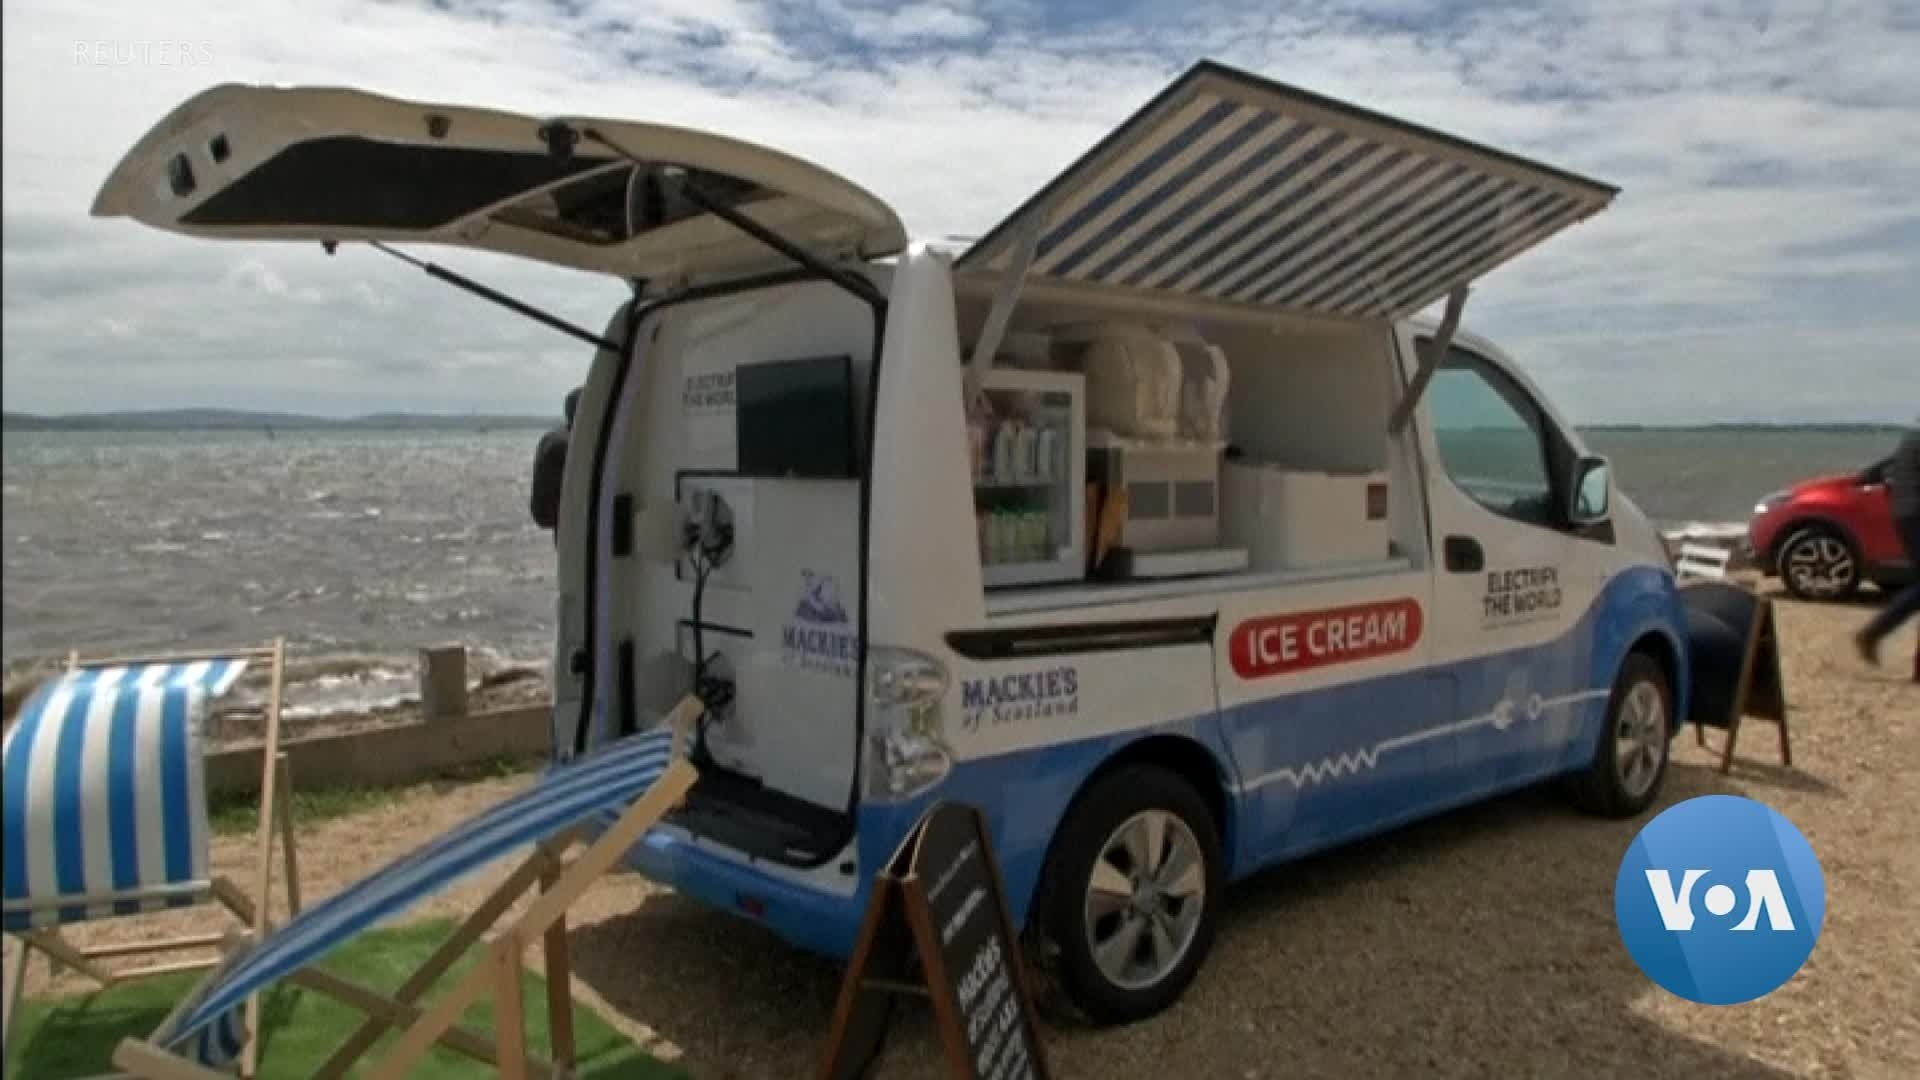 Electric Ice Cream Van Fights Air Pollution